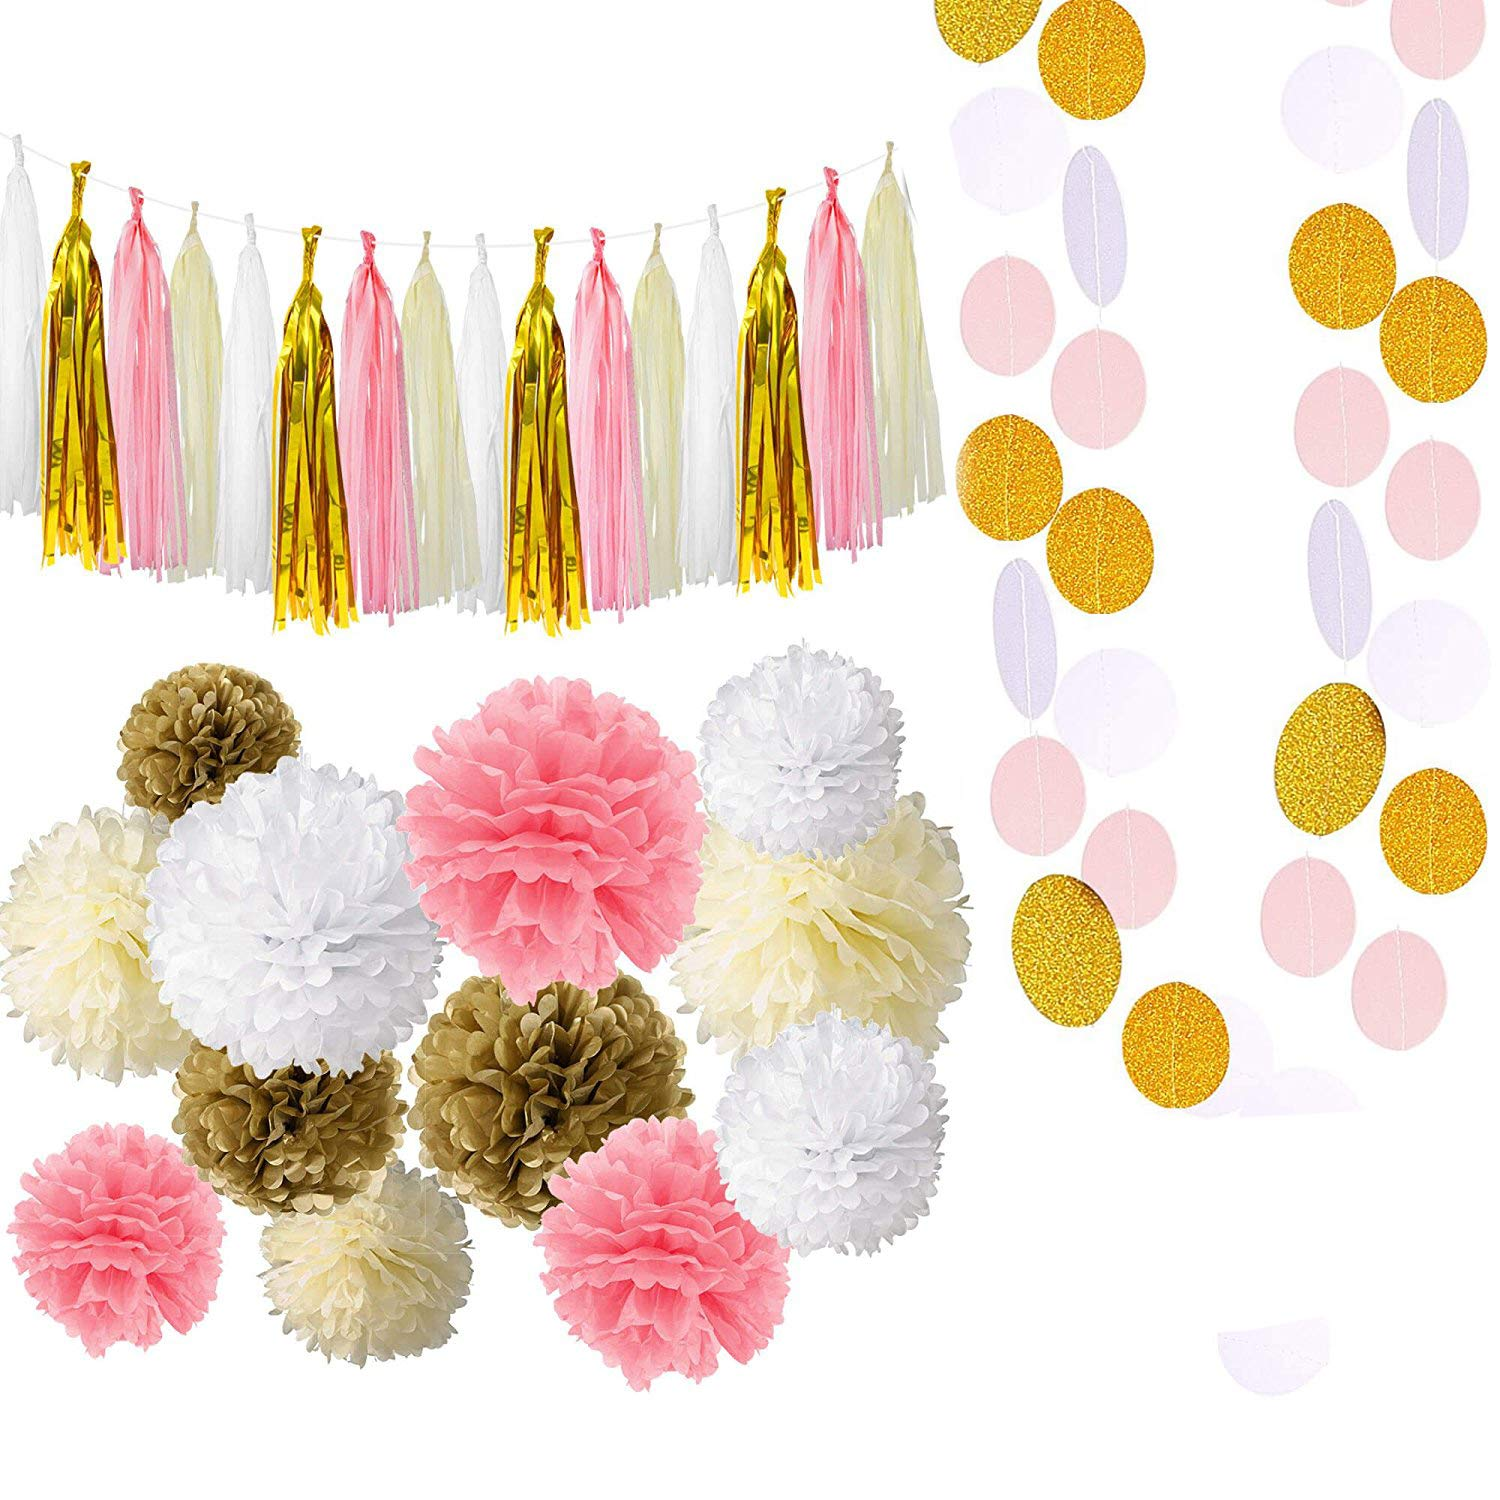 LANIAKEA 35pcs White Pink Gold Cream Tissue Pom Poms Flowers, Glitter Paper Tassels, Round Paper String, Paper Garland Decor Kit for Wedding, Birthday Celebration, Table and Wall Decoration SilkRoad Direct